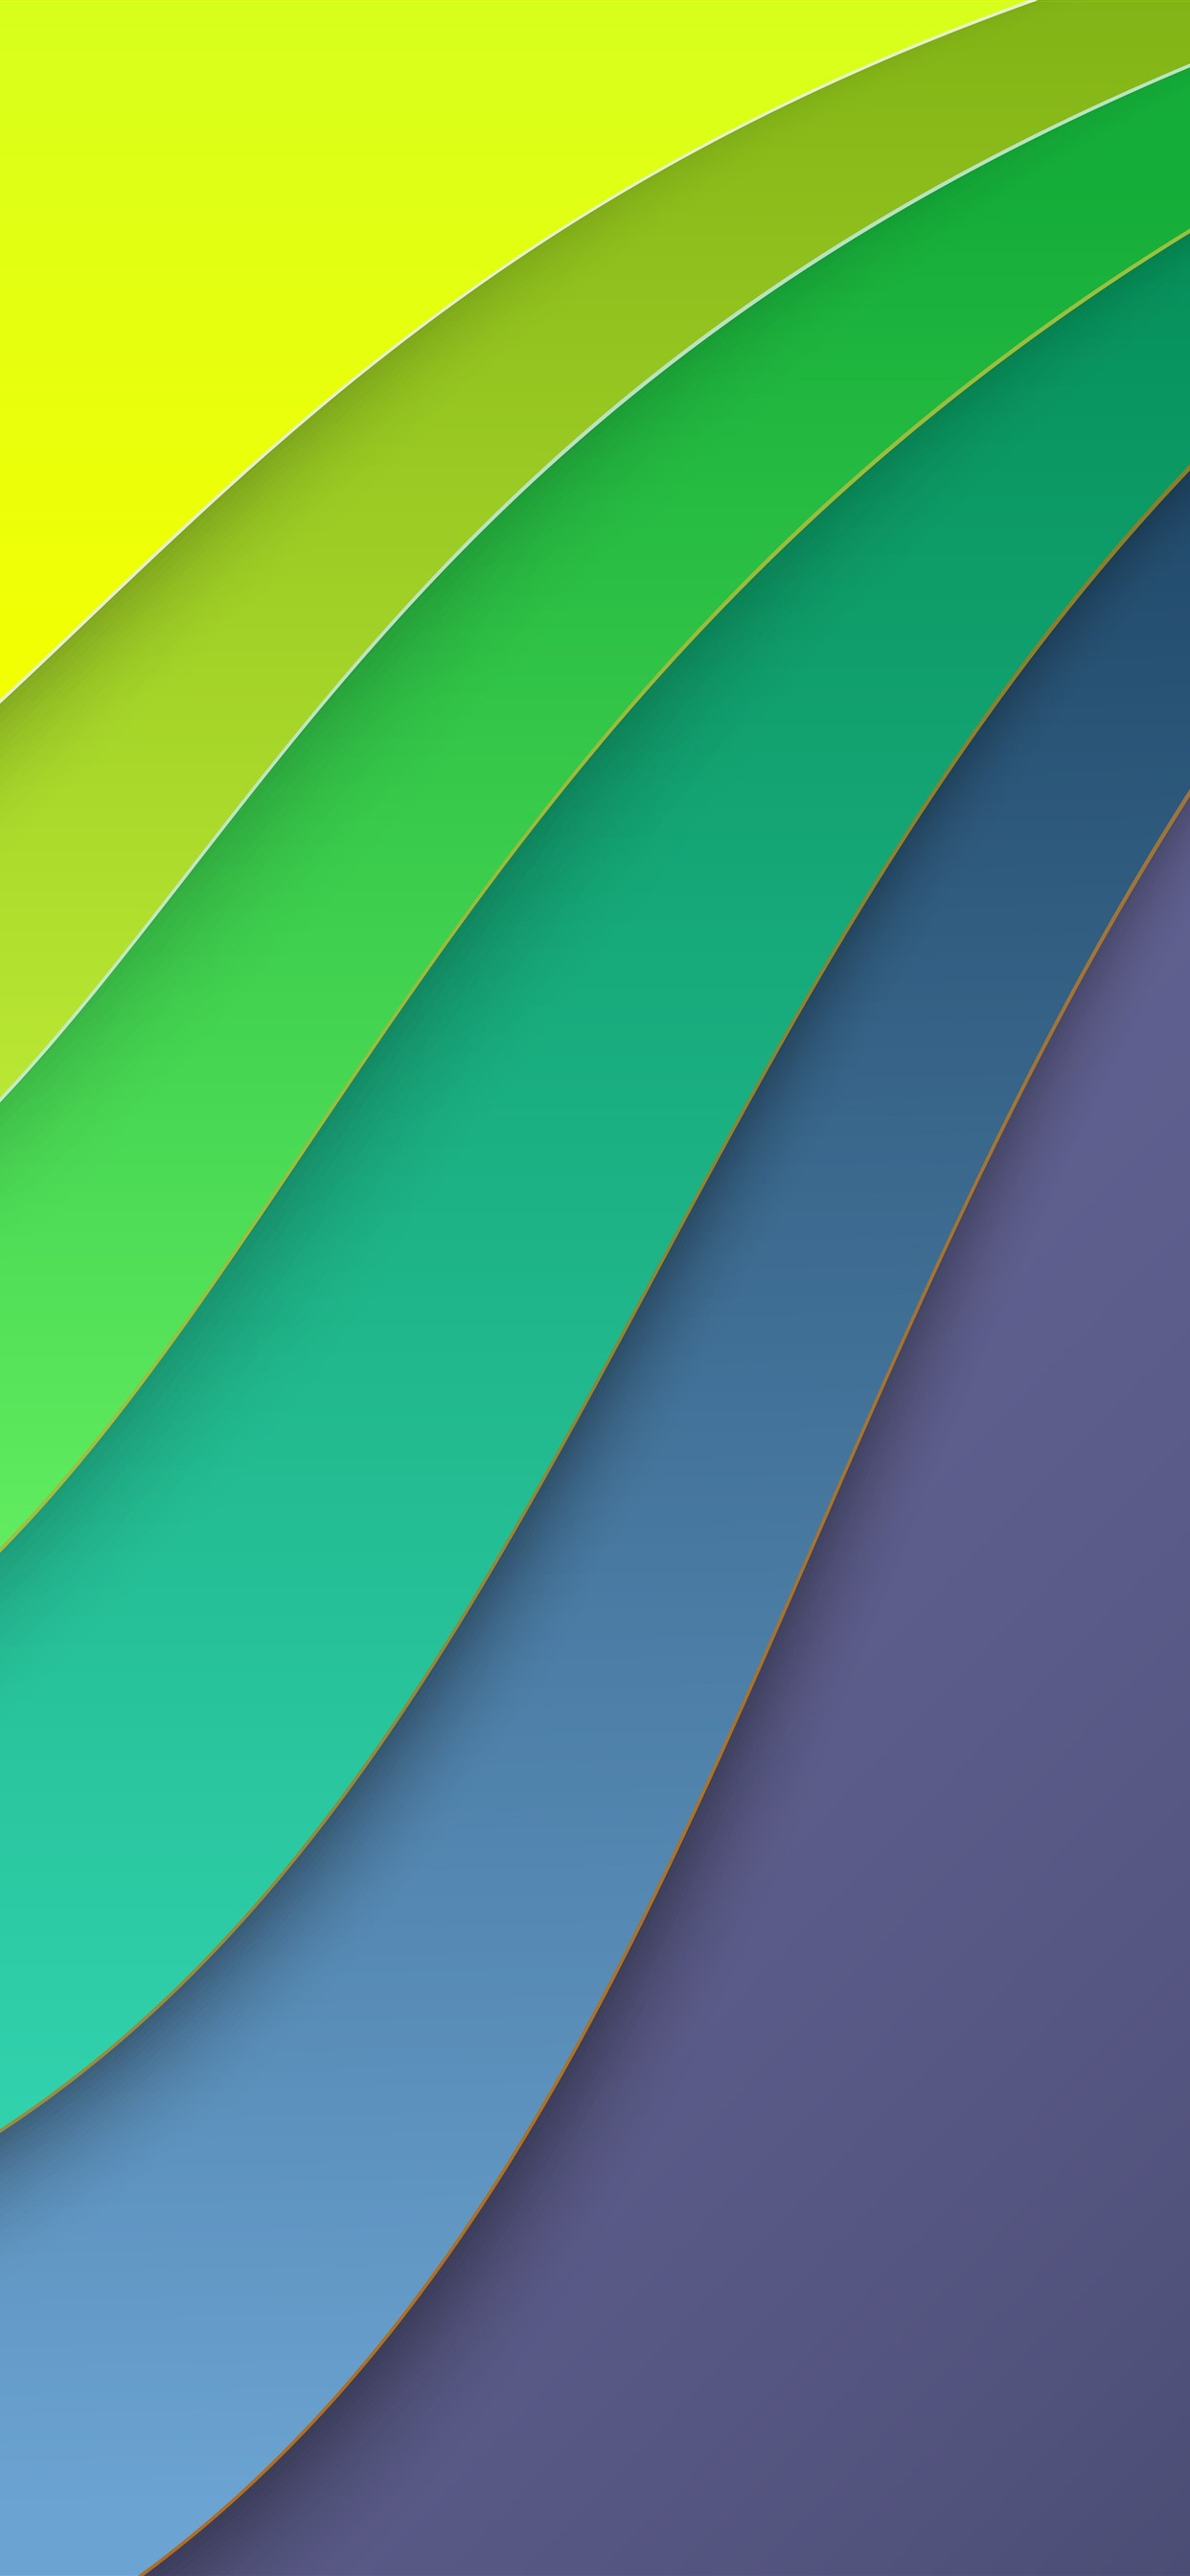 Abstract Curves Layers Green Yellow 1242x2688 Iphone 11 Pro Xs Max Wallpaper Background Picture Image